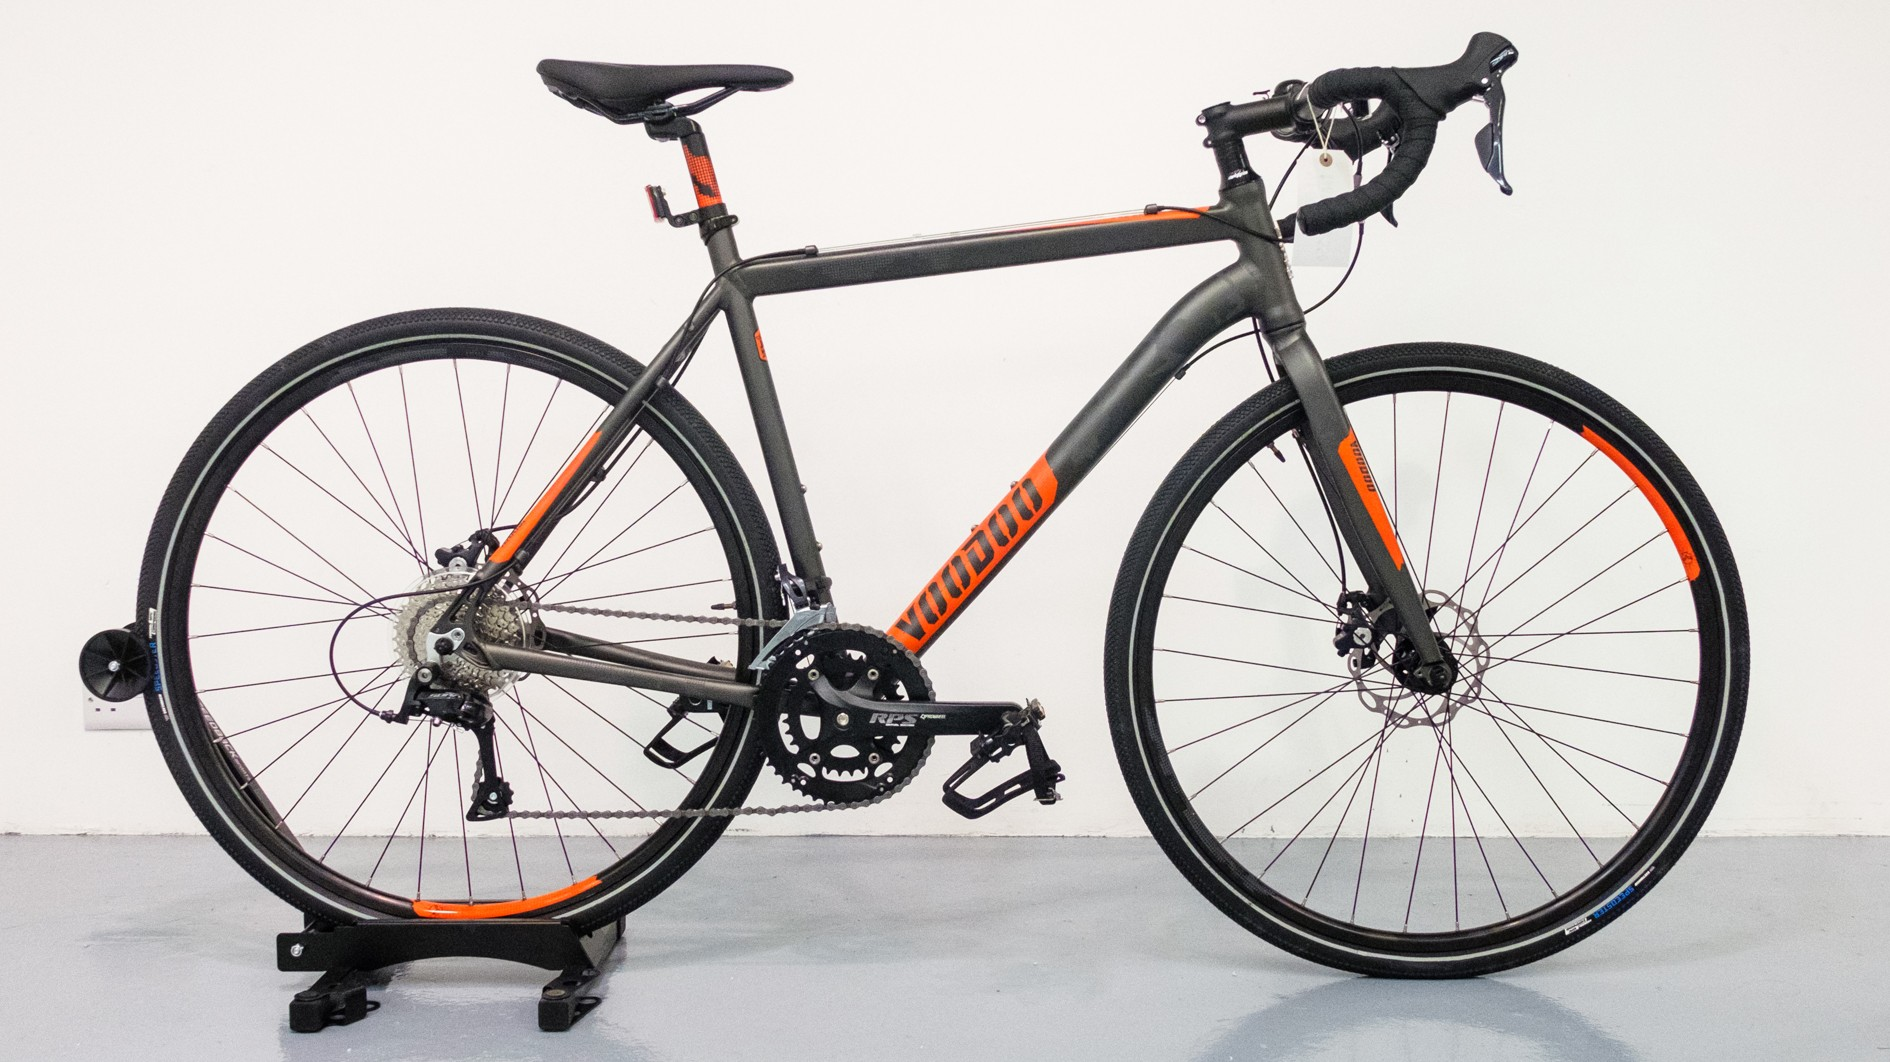 Gravel bikes, such as this £550 Voodoo Nakisi, are getting ever more affordable